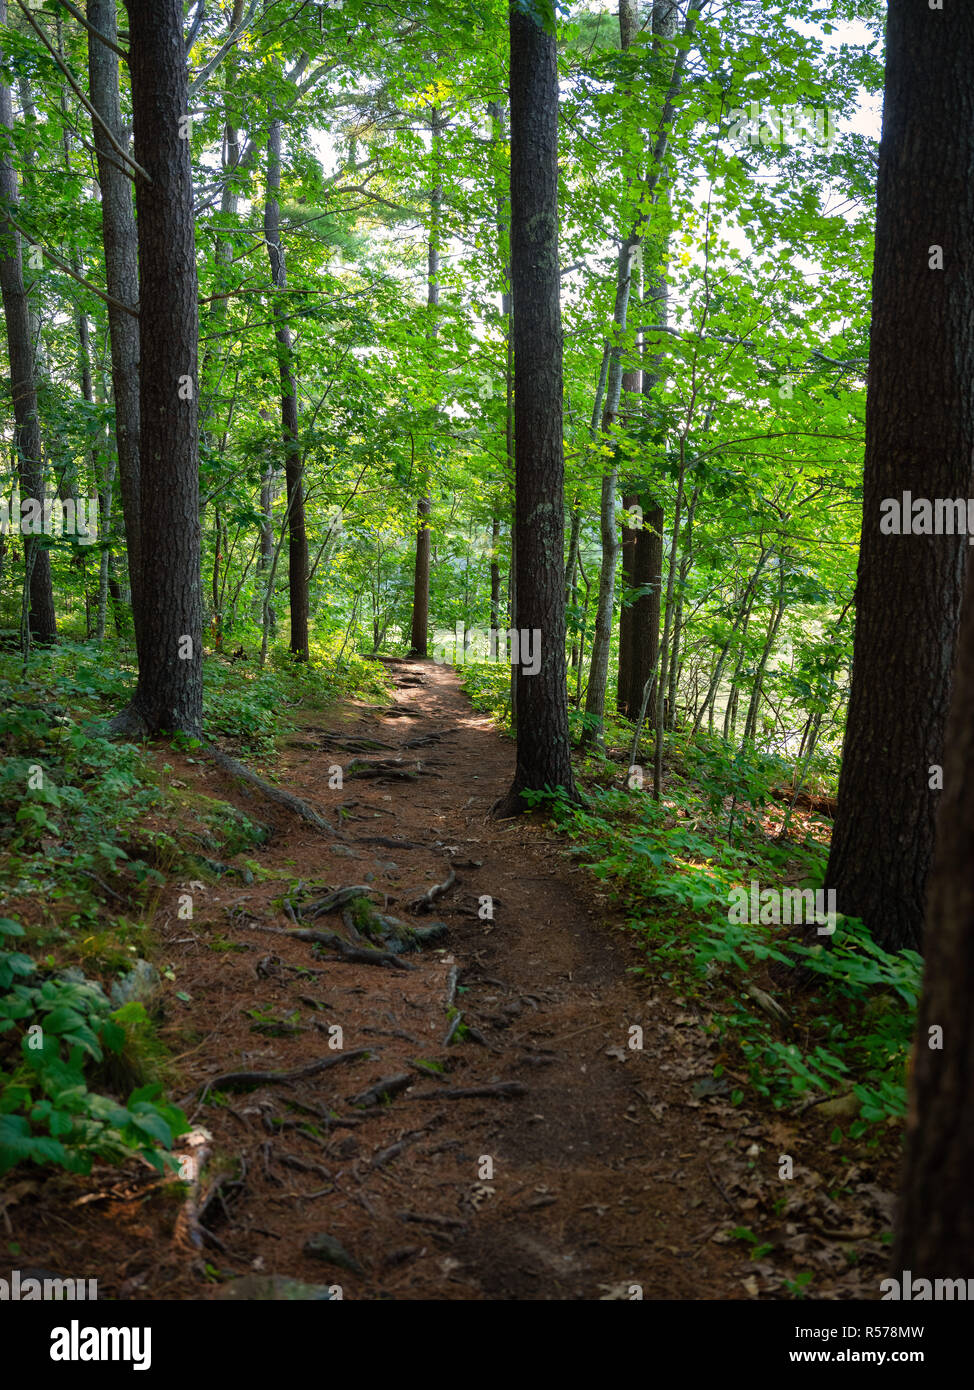 Forest path in summer or spring, with tall trees and underbrush - Stock Image